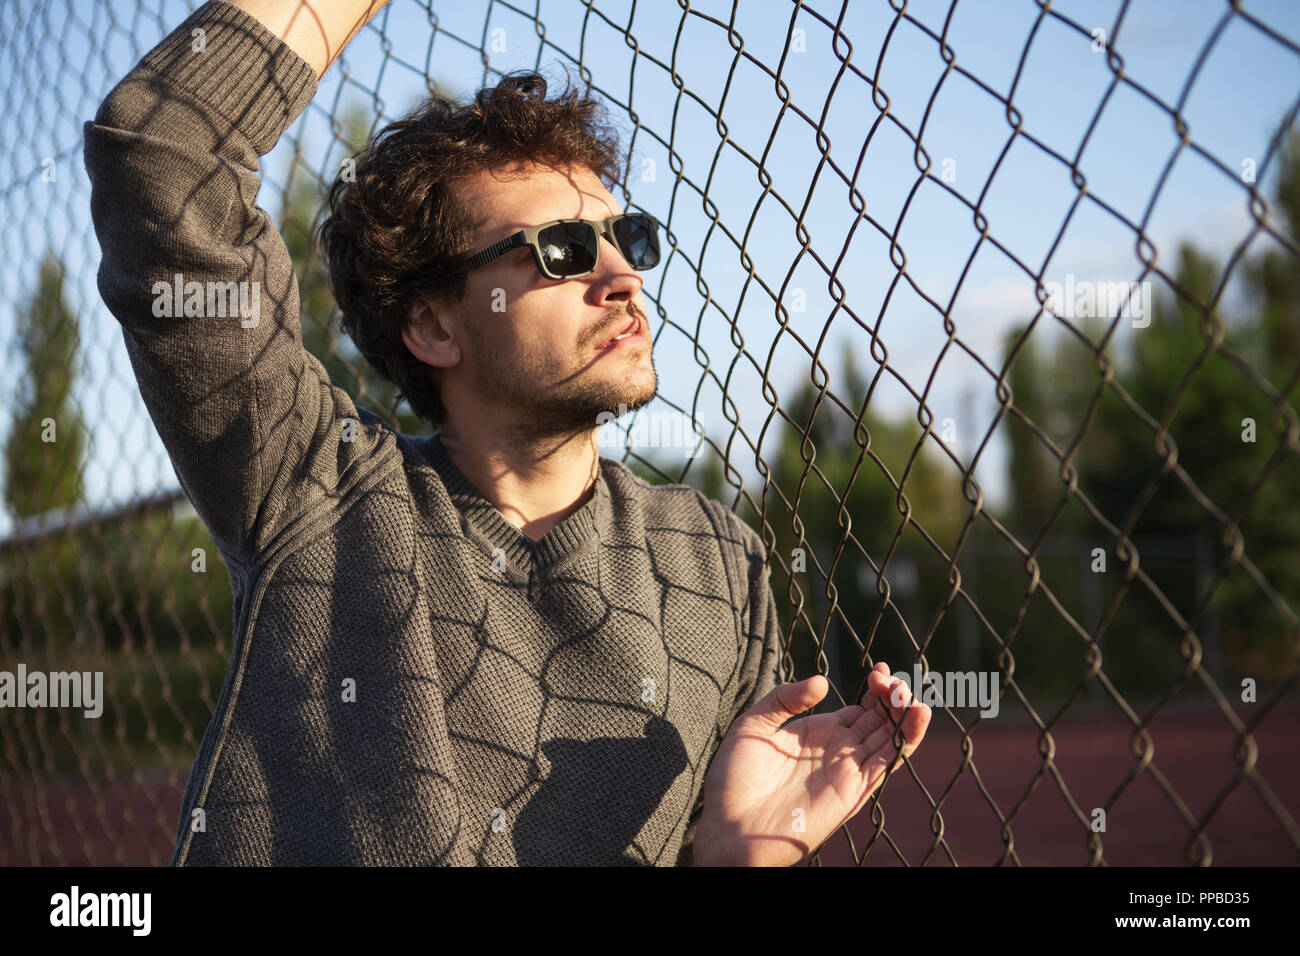 Young man standing and holding the iron fence - Stock Image